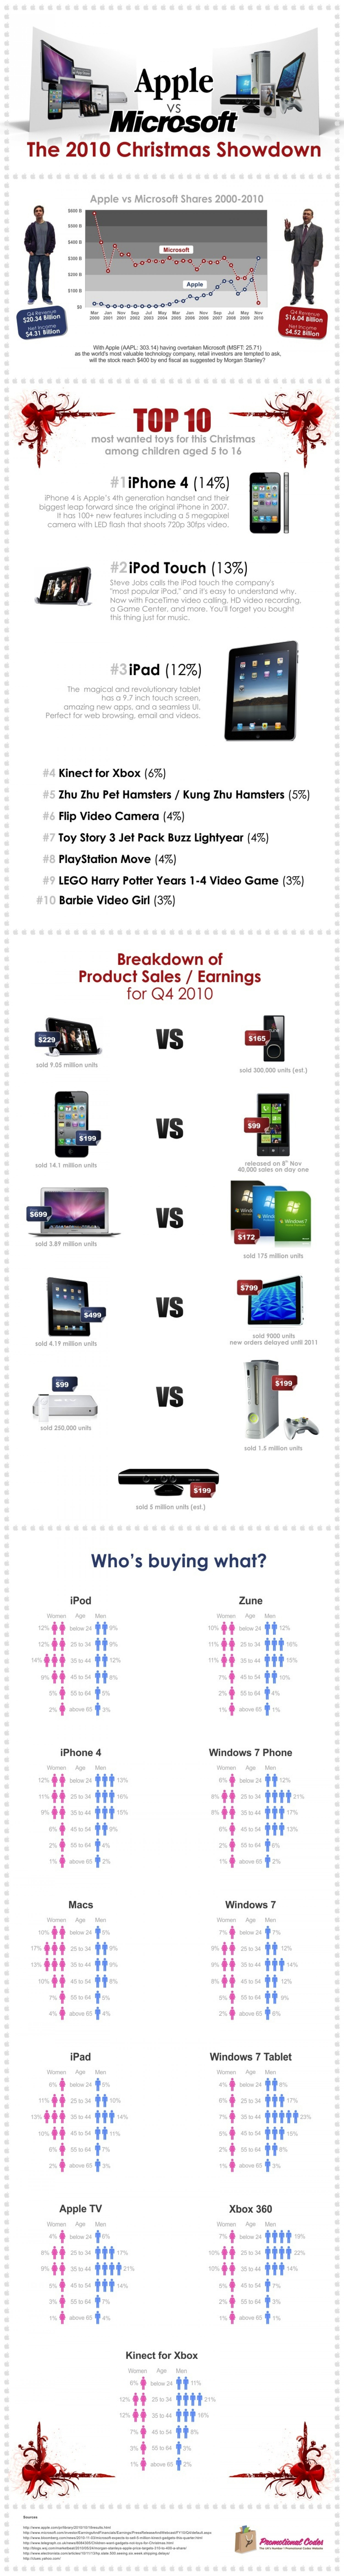 Apple Versus Microsoft: The 2010 Christmas Showdown Infographic